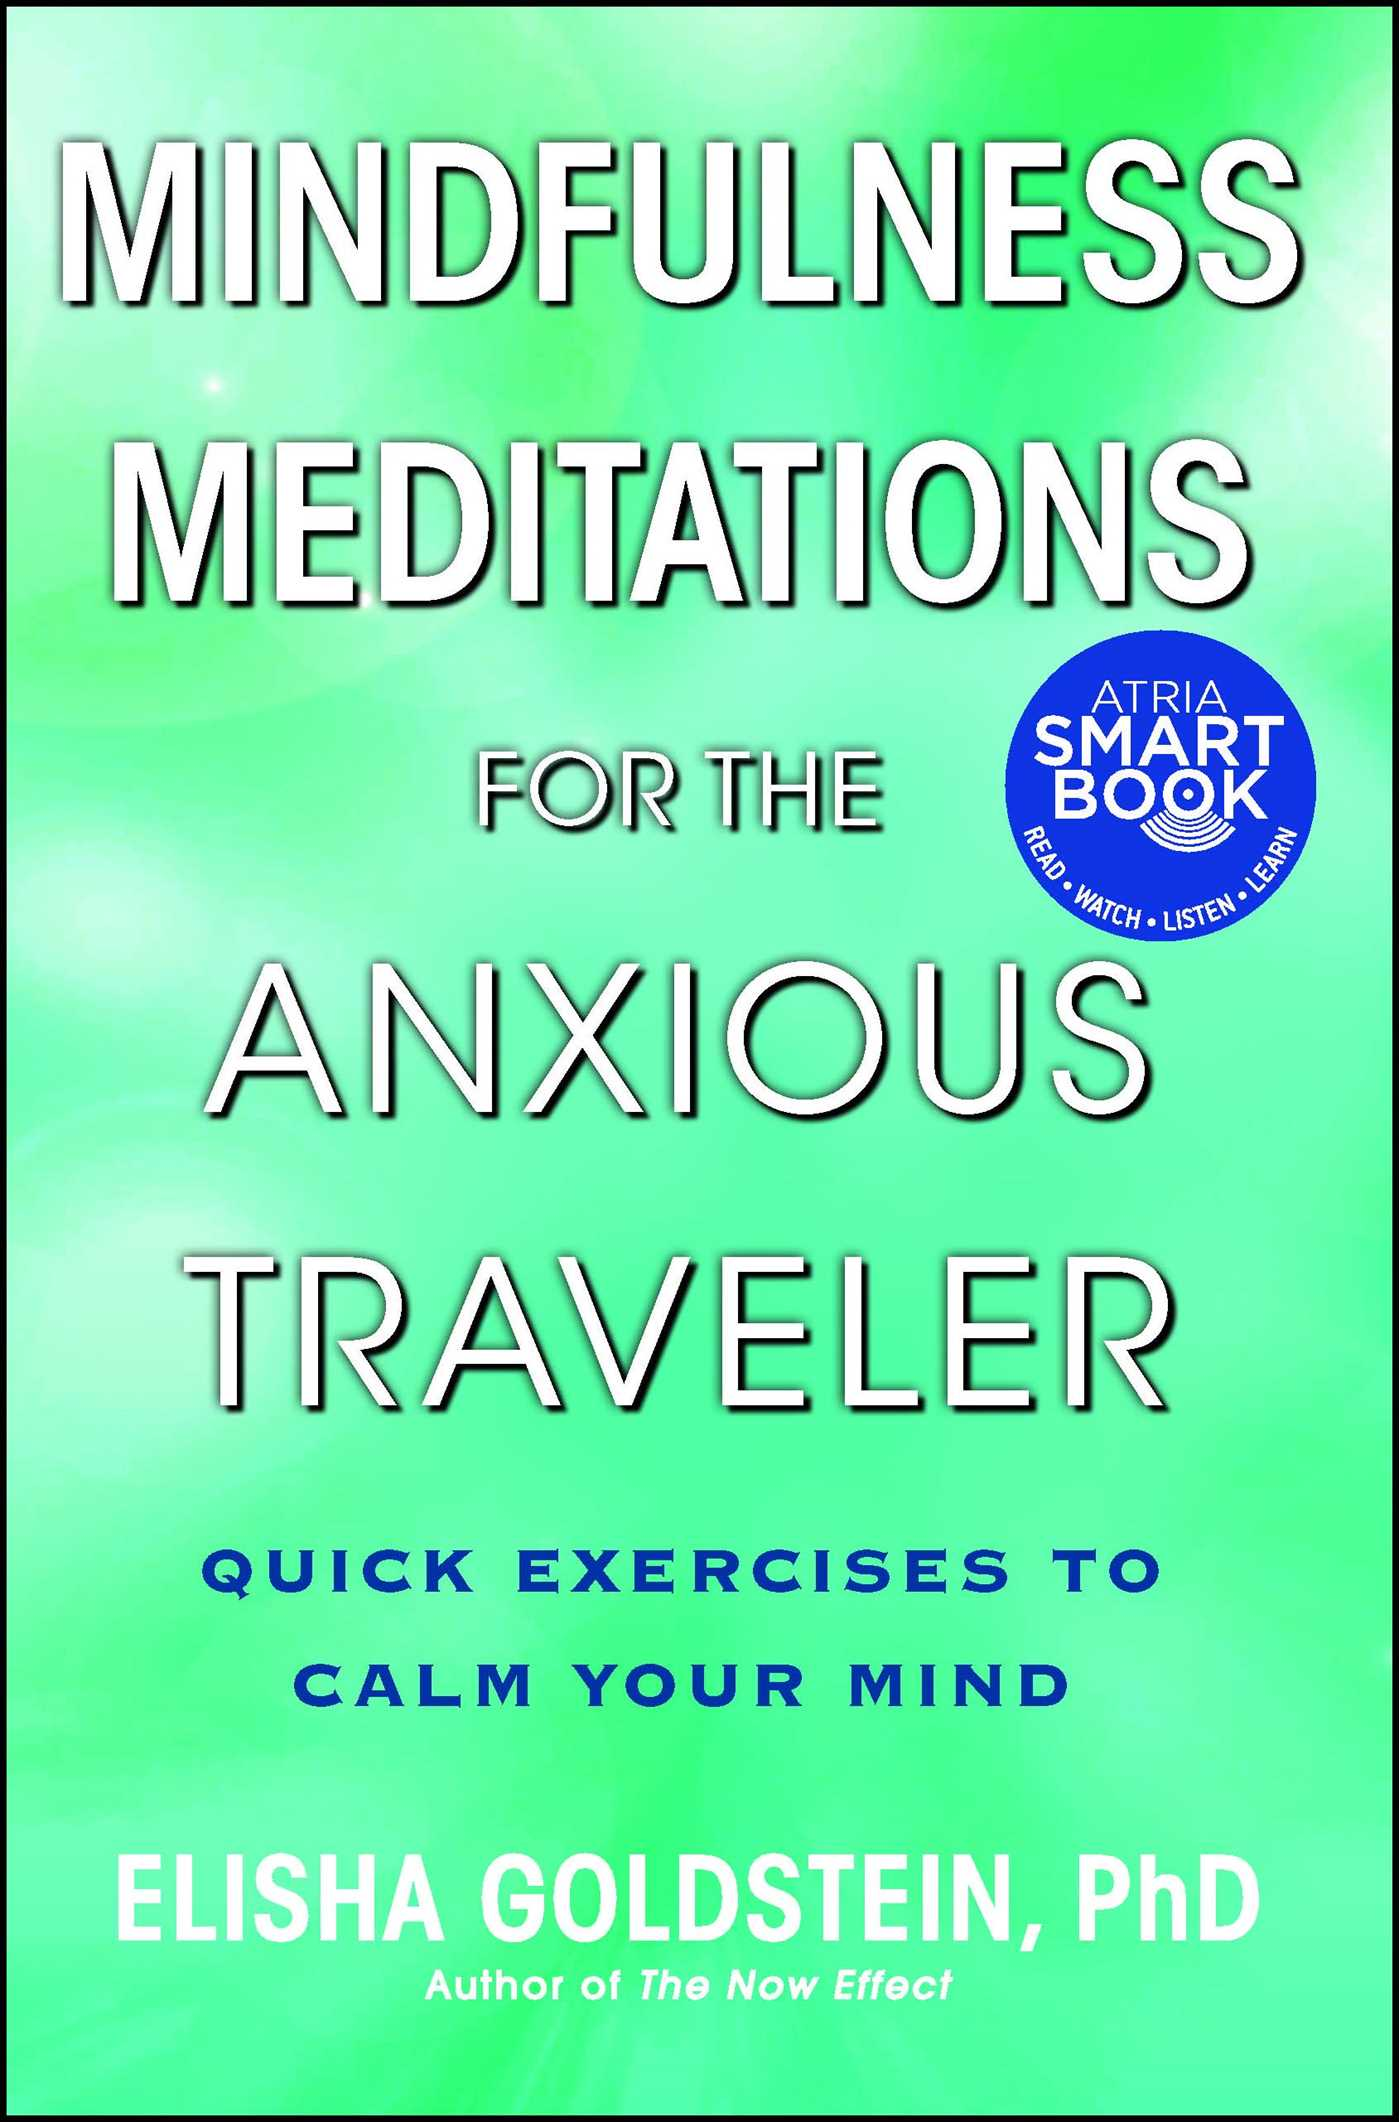 Mindfulness meditations for the anxious traveler 9781476711324 hr